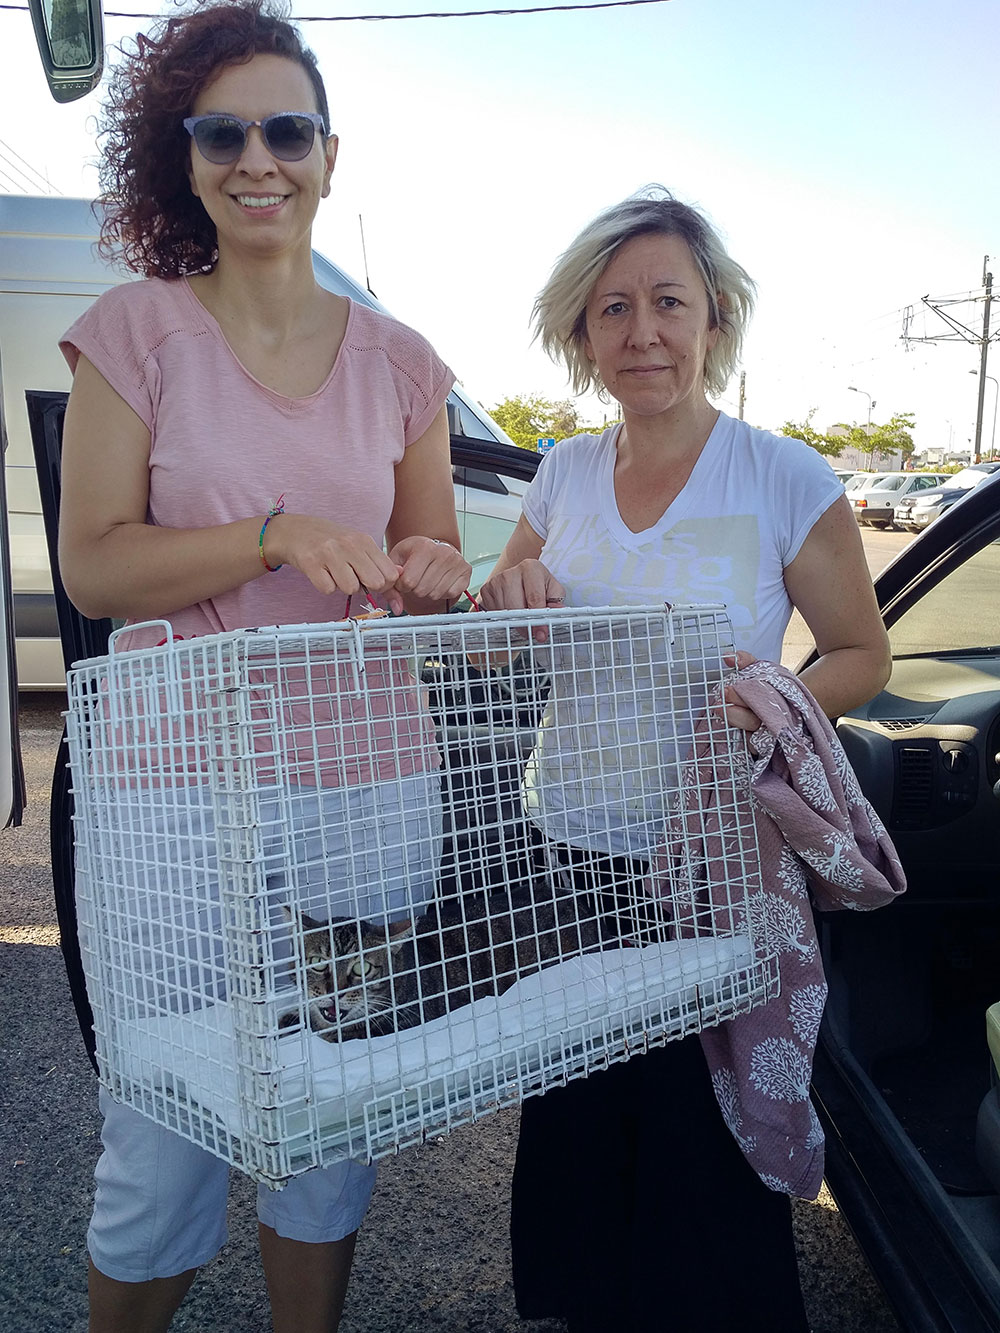 Chantelle arrives with her friends from Nine Lives Greece